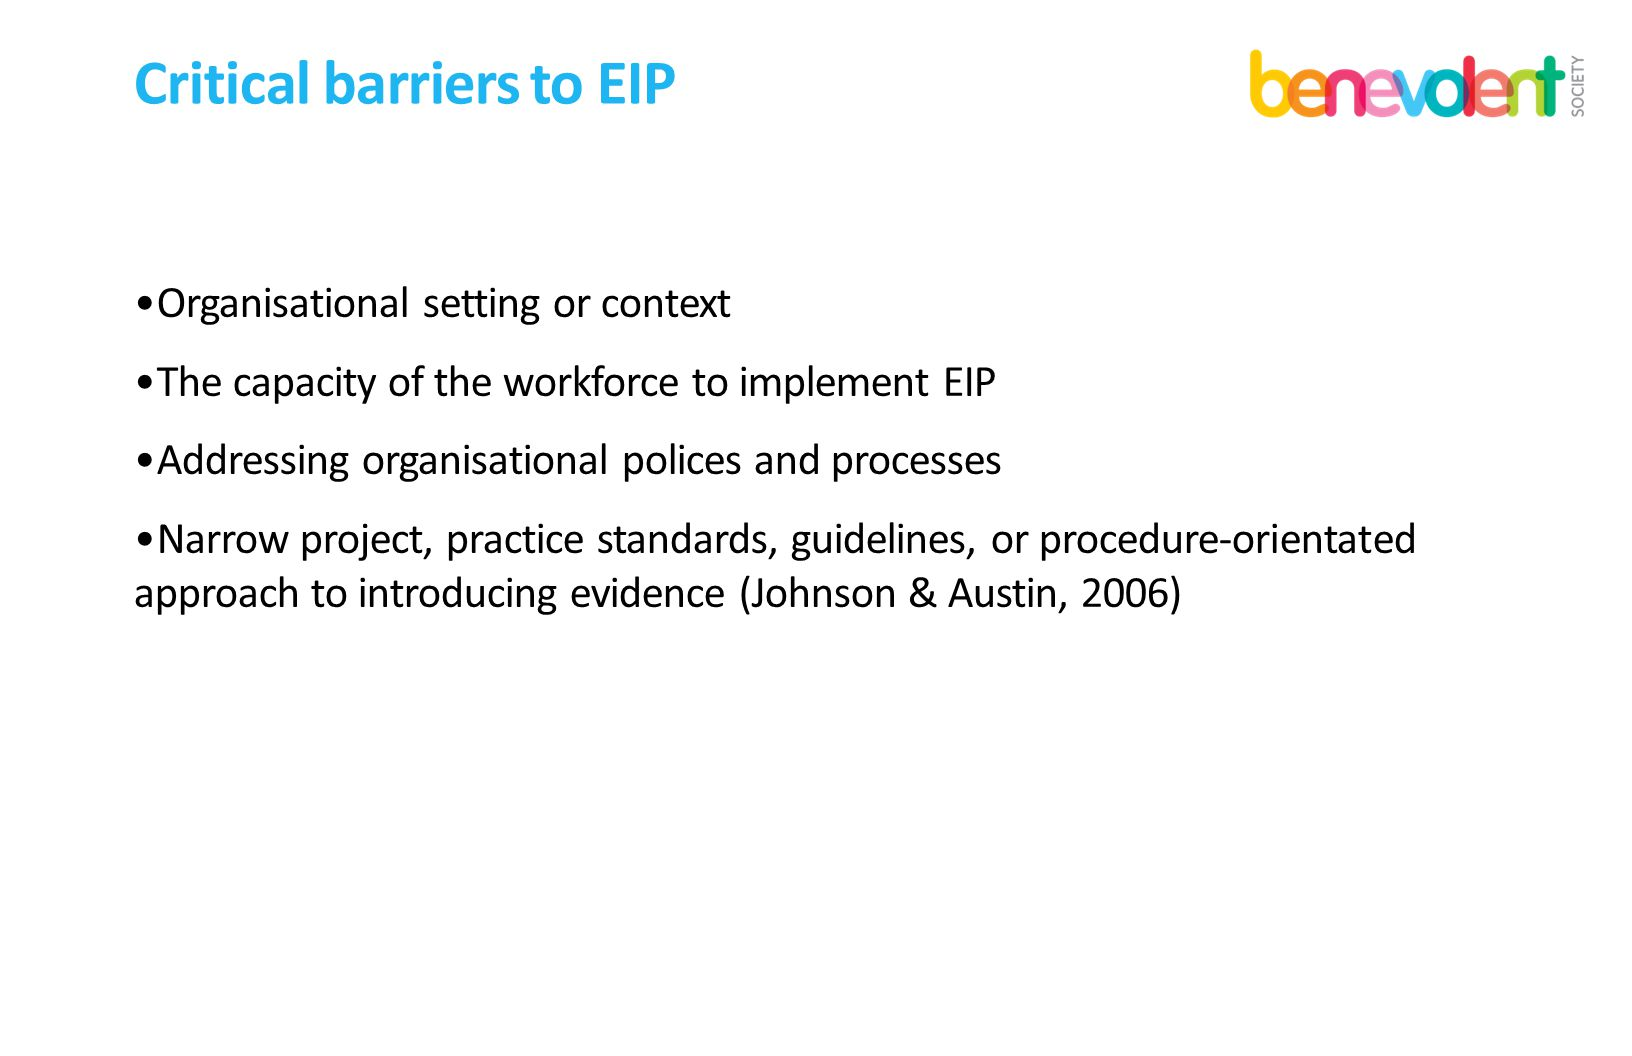 Critical barriers to EIP